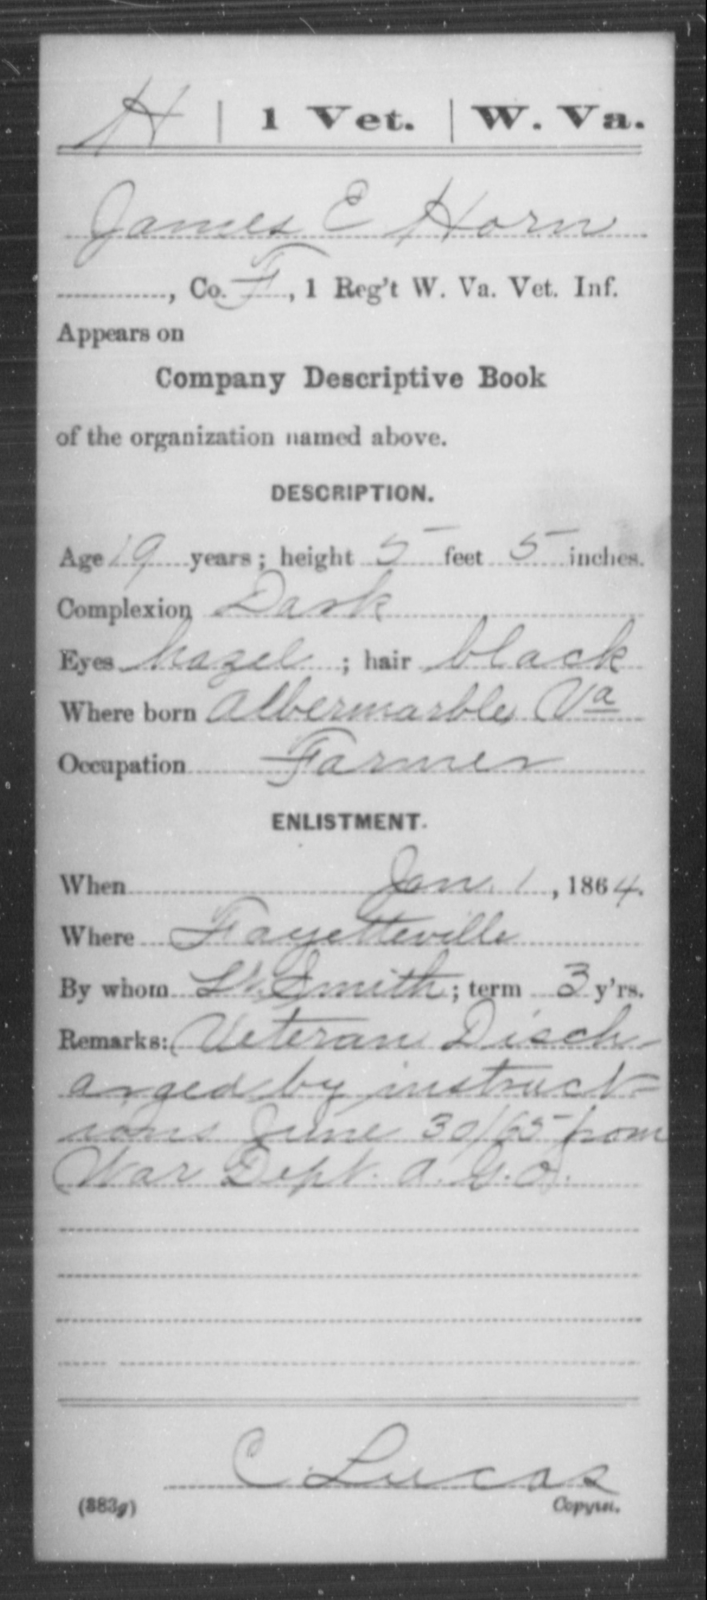 Horn, James E - Age 19, Year: 1864 - Miscellaneous Card Abstracts of Records - West Virginia